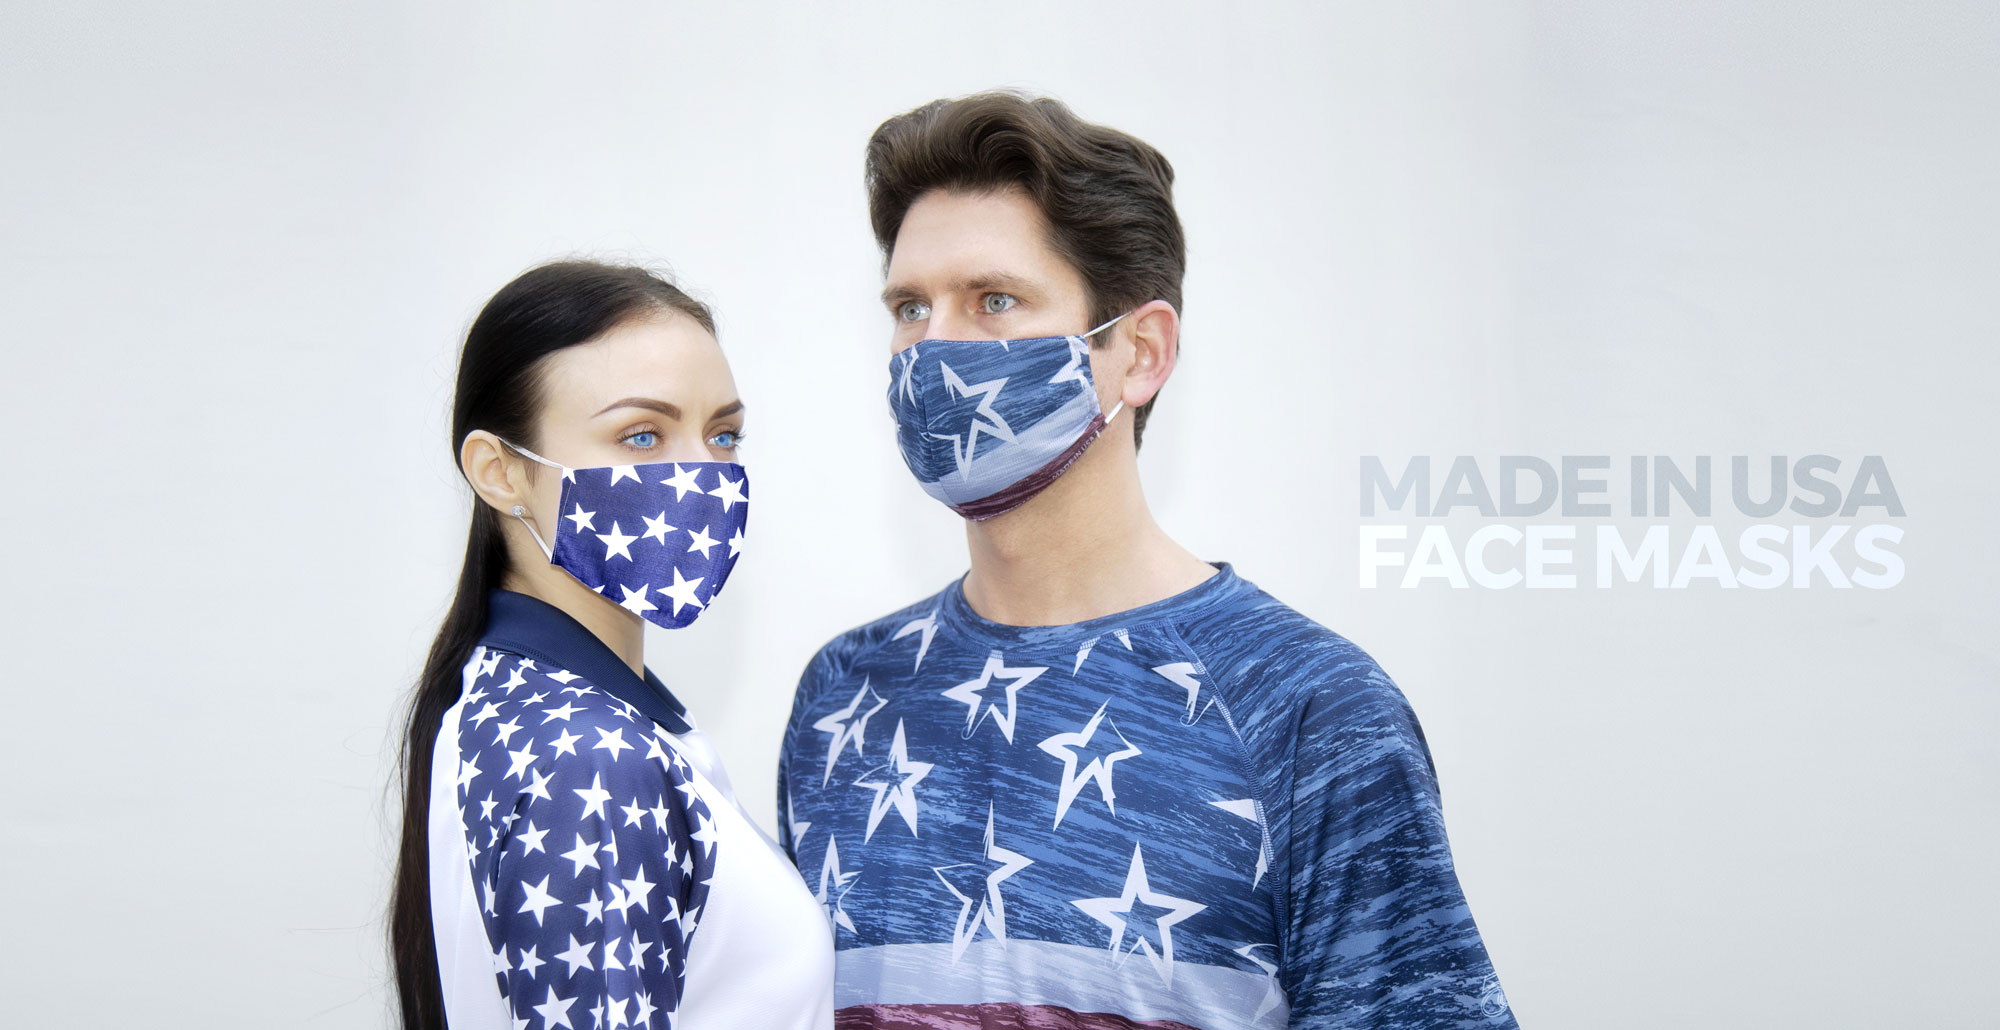 akwa made in usa masks